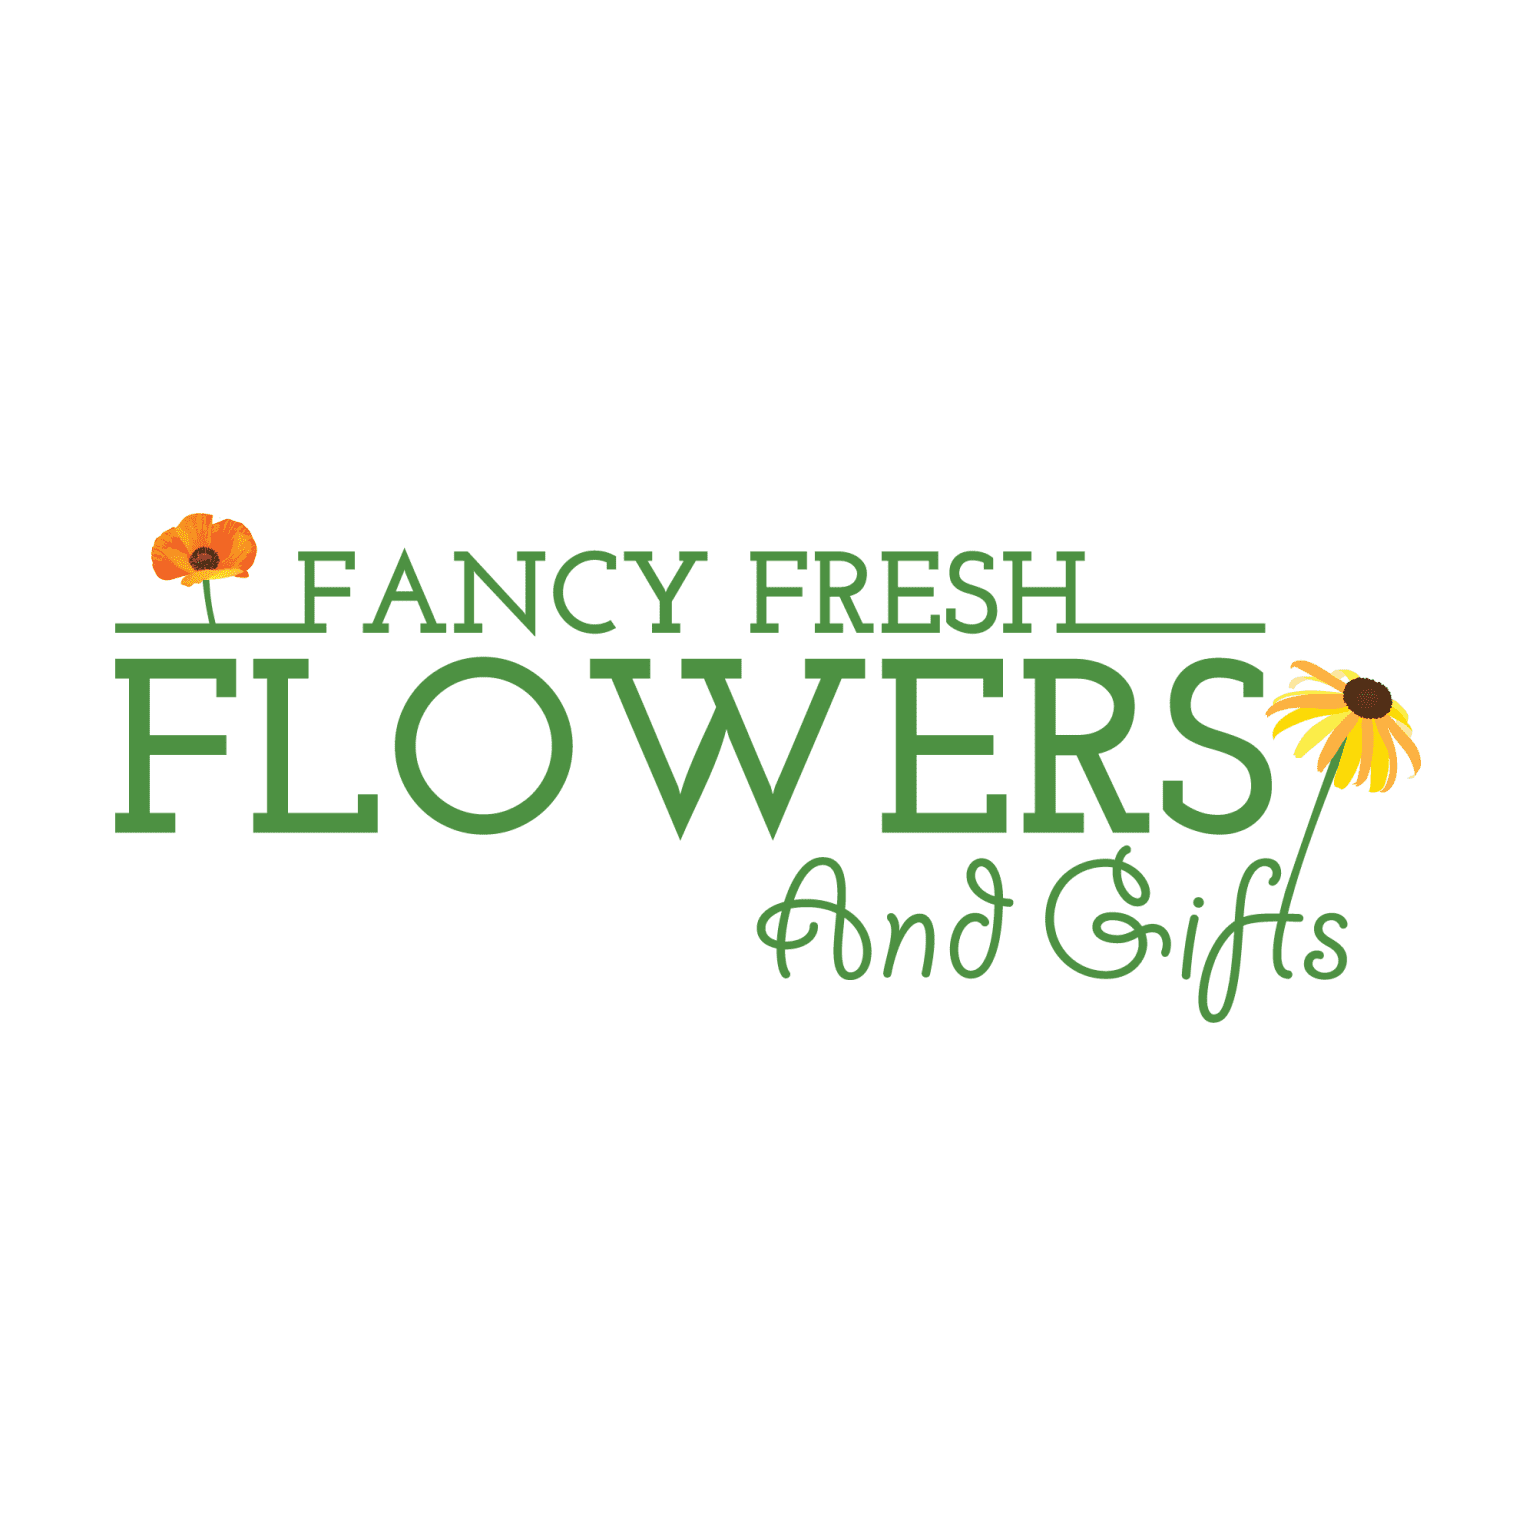 Fancy Fresh Flowers and Gifts